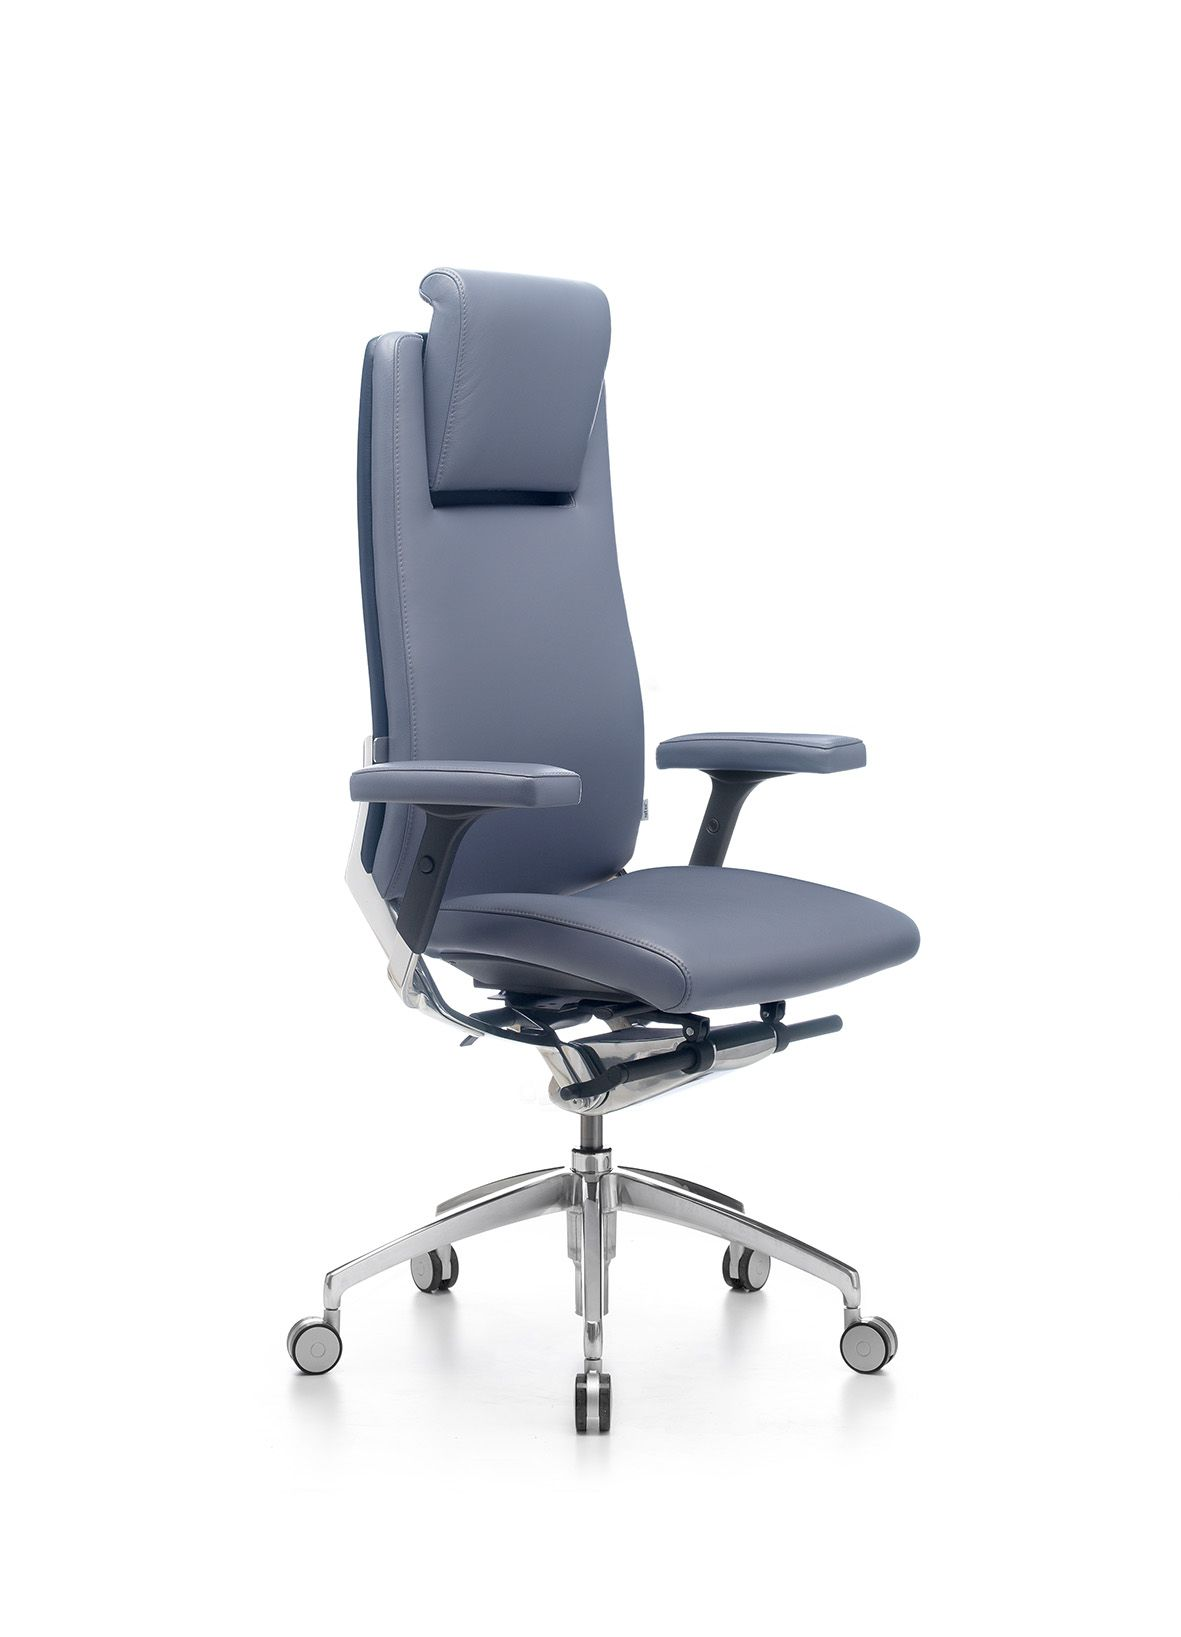 best service b214a 88f1f Luxurious High back ergonomic chairs designed for… | High ...